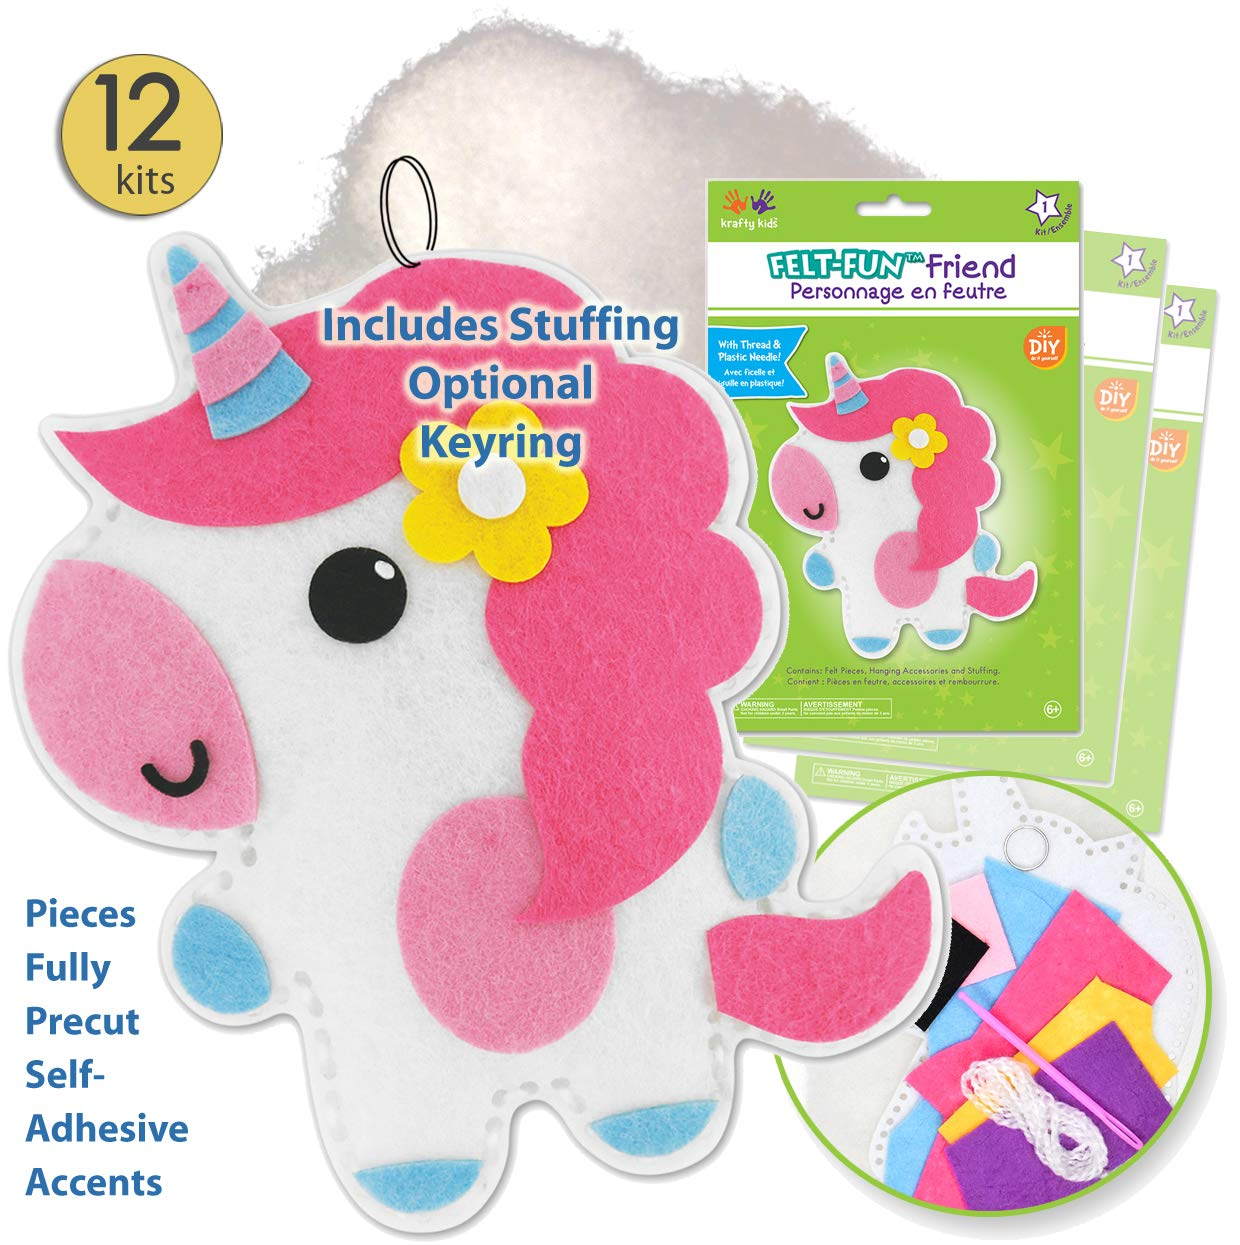 Kid Sewing Kit Unicorn Toys for Girls Unicorn Gifts for Girls Arts and Crafts Unicorn Crafts for Girls Kids Craft Kits Girls Crafts Unicorn Art Kid Crafts for Girls Craft Kits for Girls 1 Kit